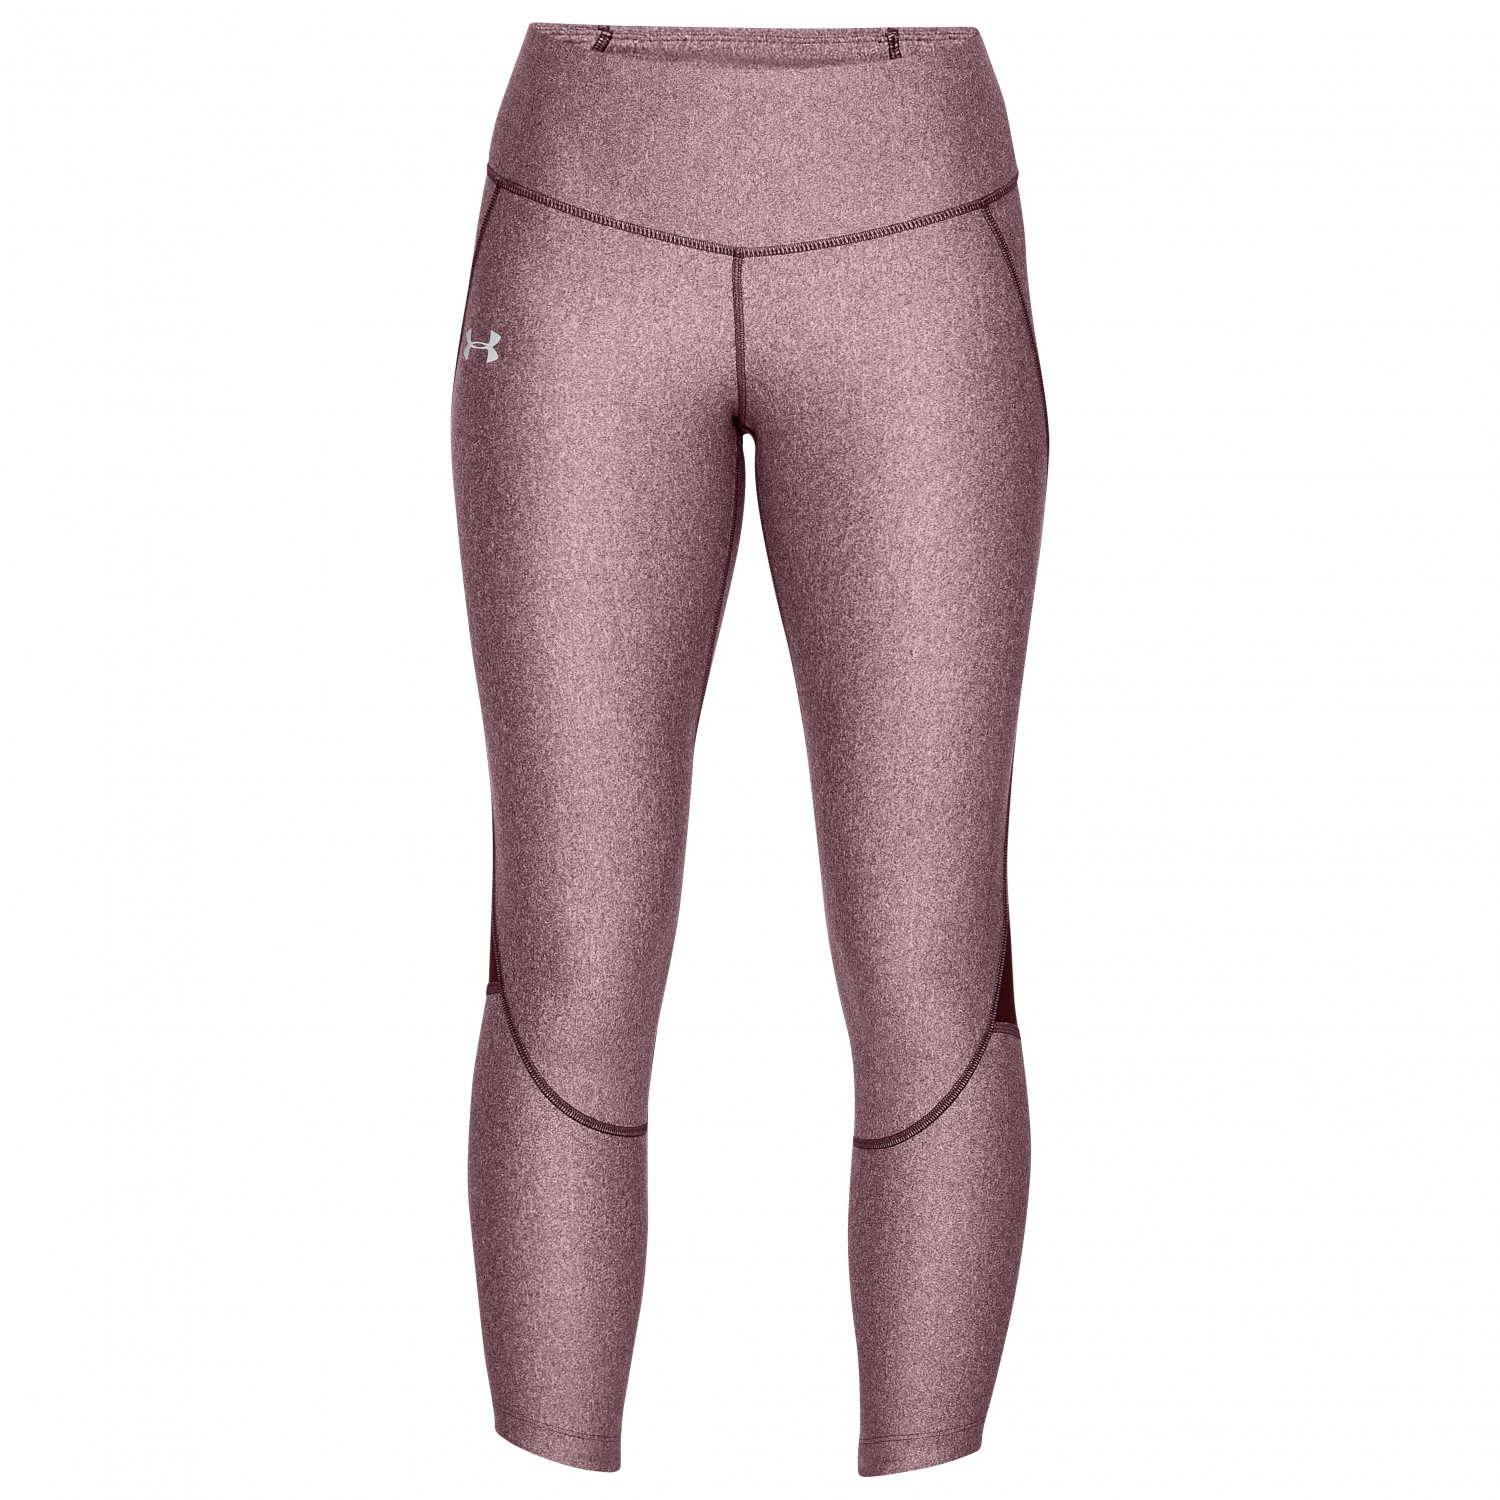 sneakers for cheap 46cba c4d87 Under Armour - Women s Armour Fly Fast Crop - Running tights